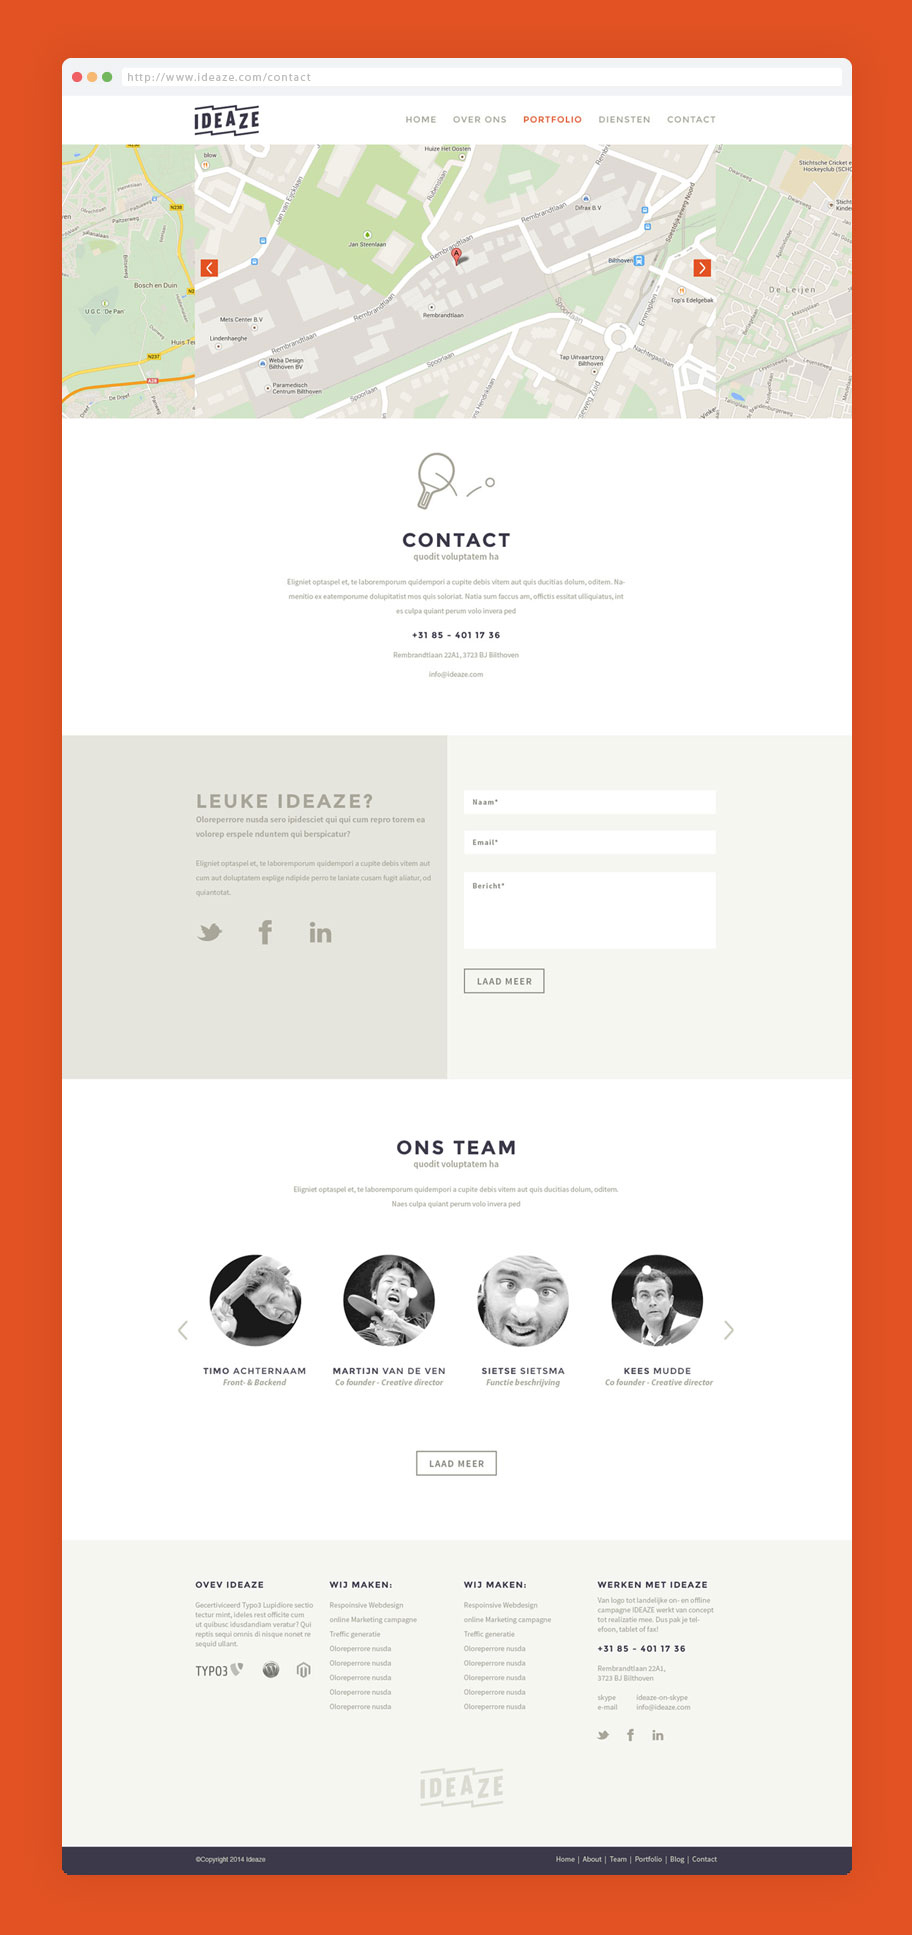 New-web-design-clean-FKKR-web-ontwerp-contact